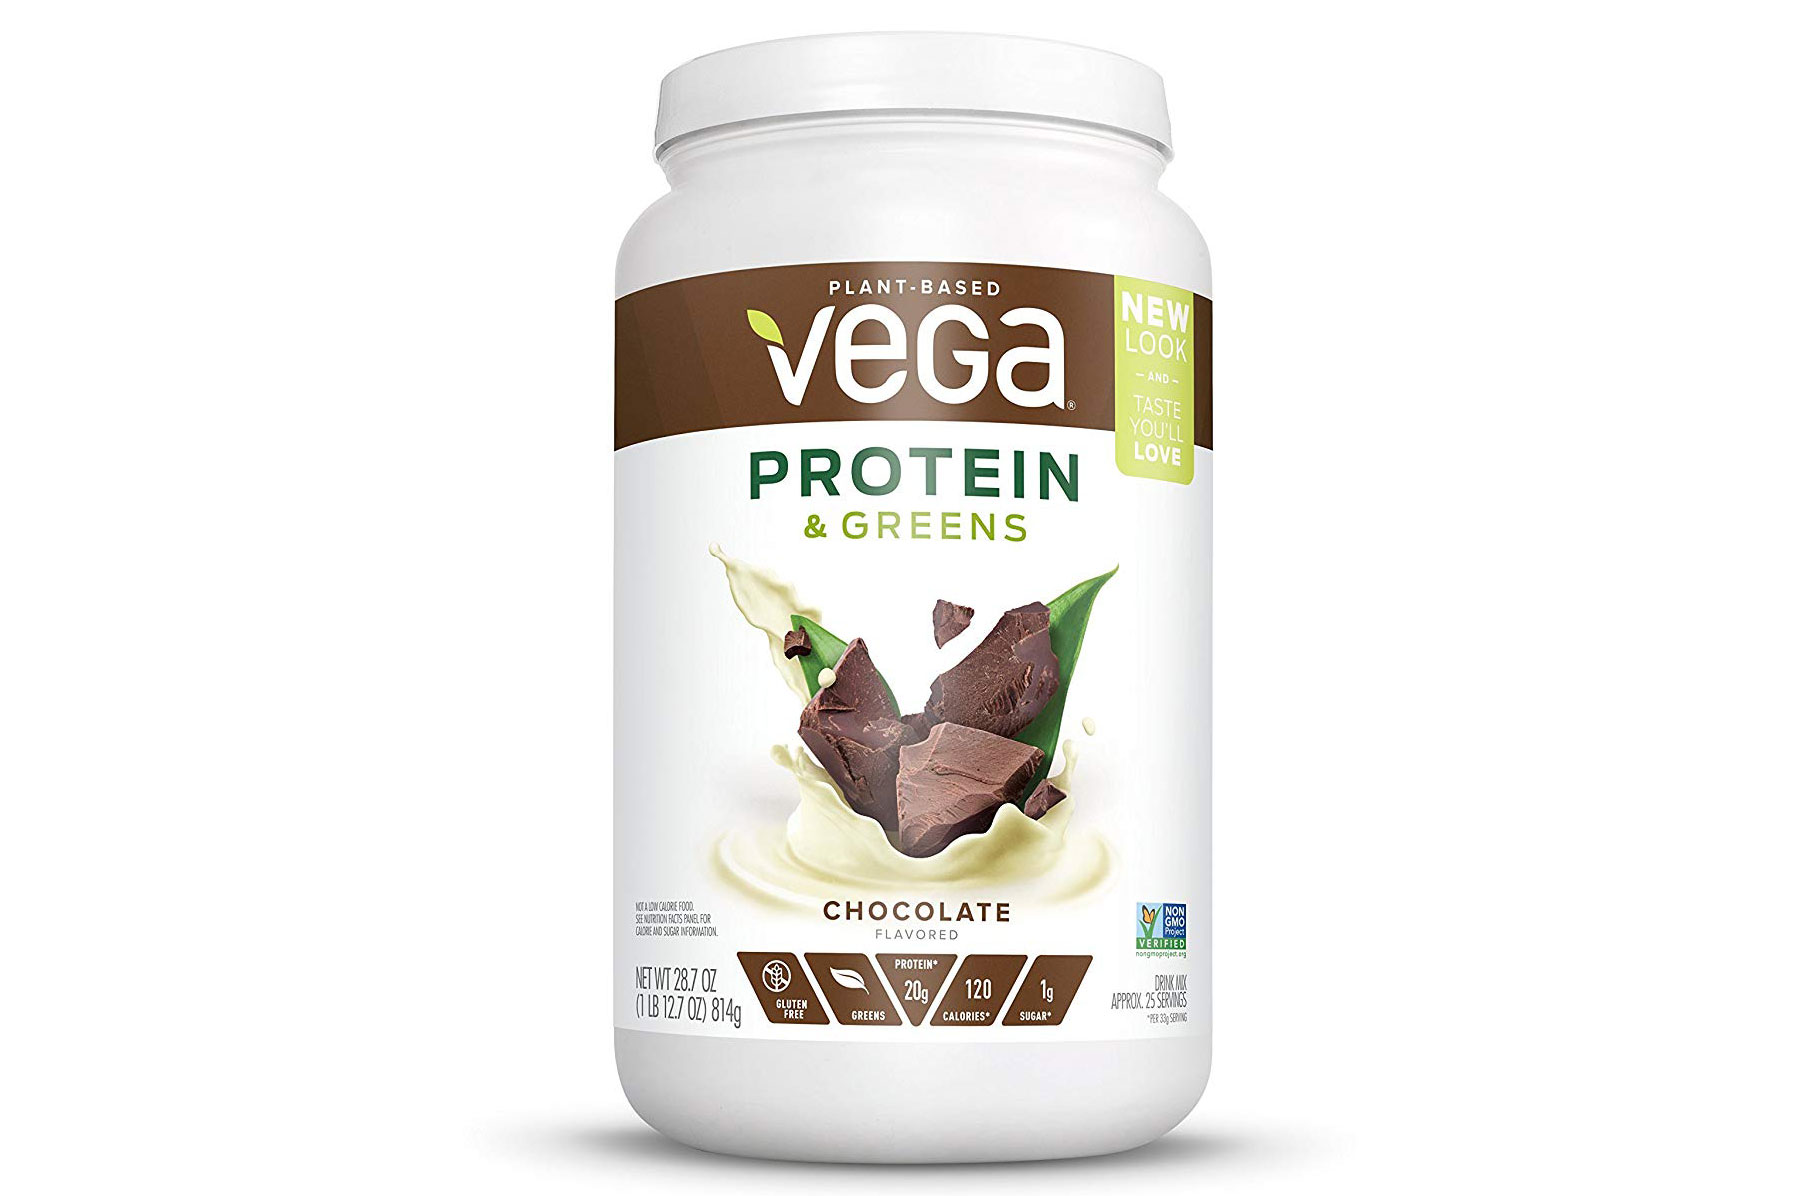 Vega Protein & Greens Chocolate